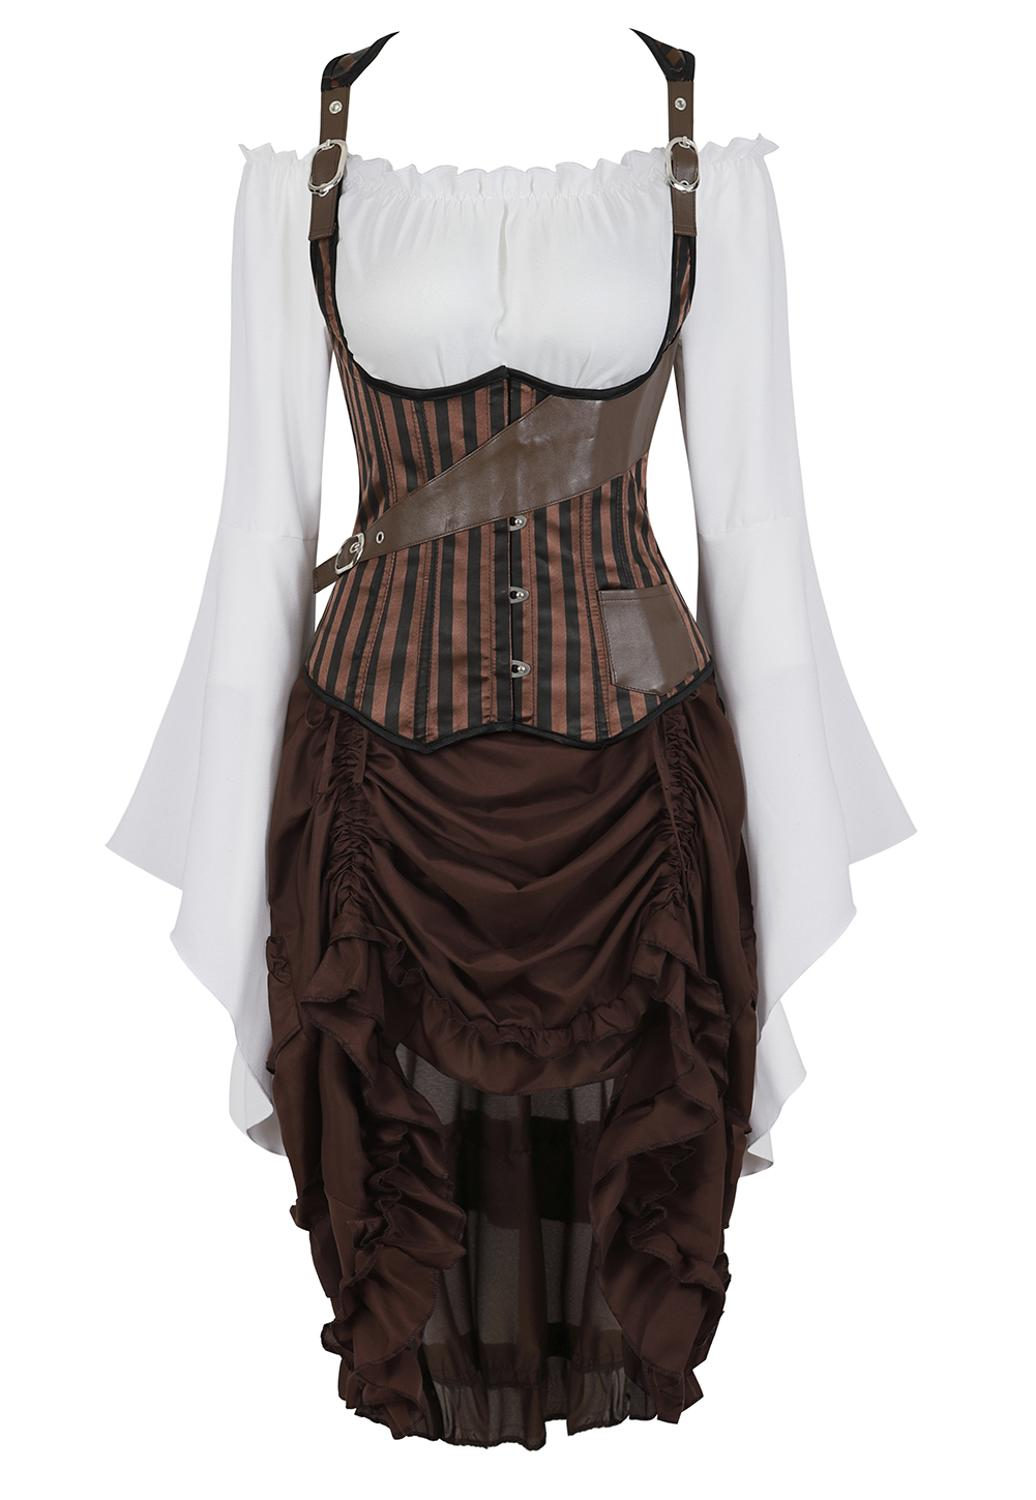 Grebrafan Tight Lace Vest Corset Striped with Pirate Skirt and Blouse 3 Piece Costume Steampunk